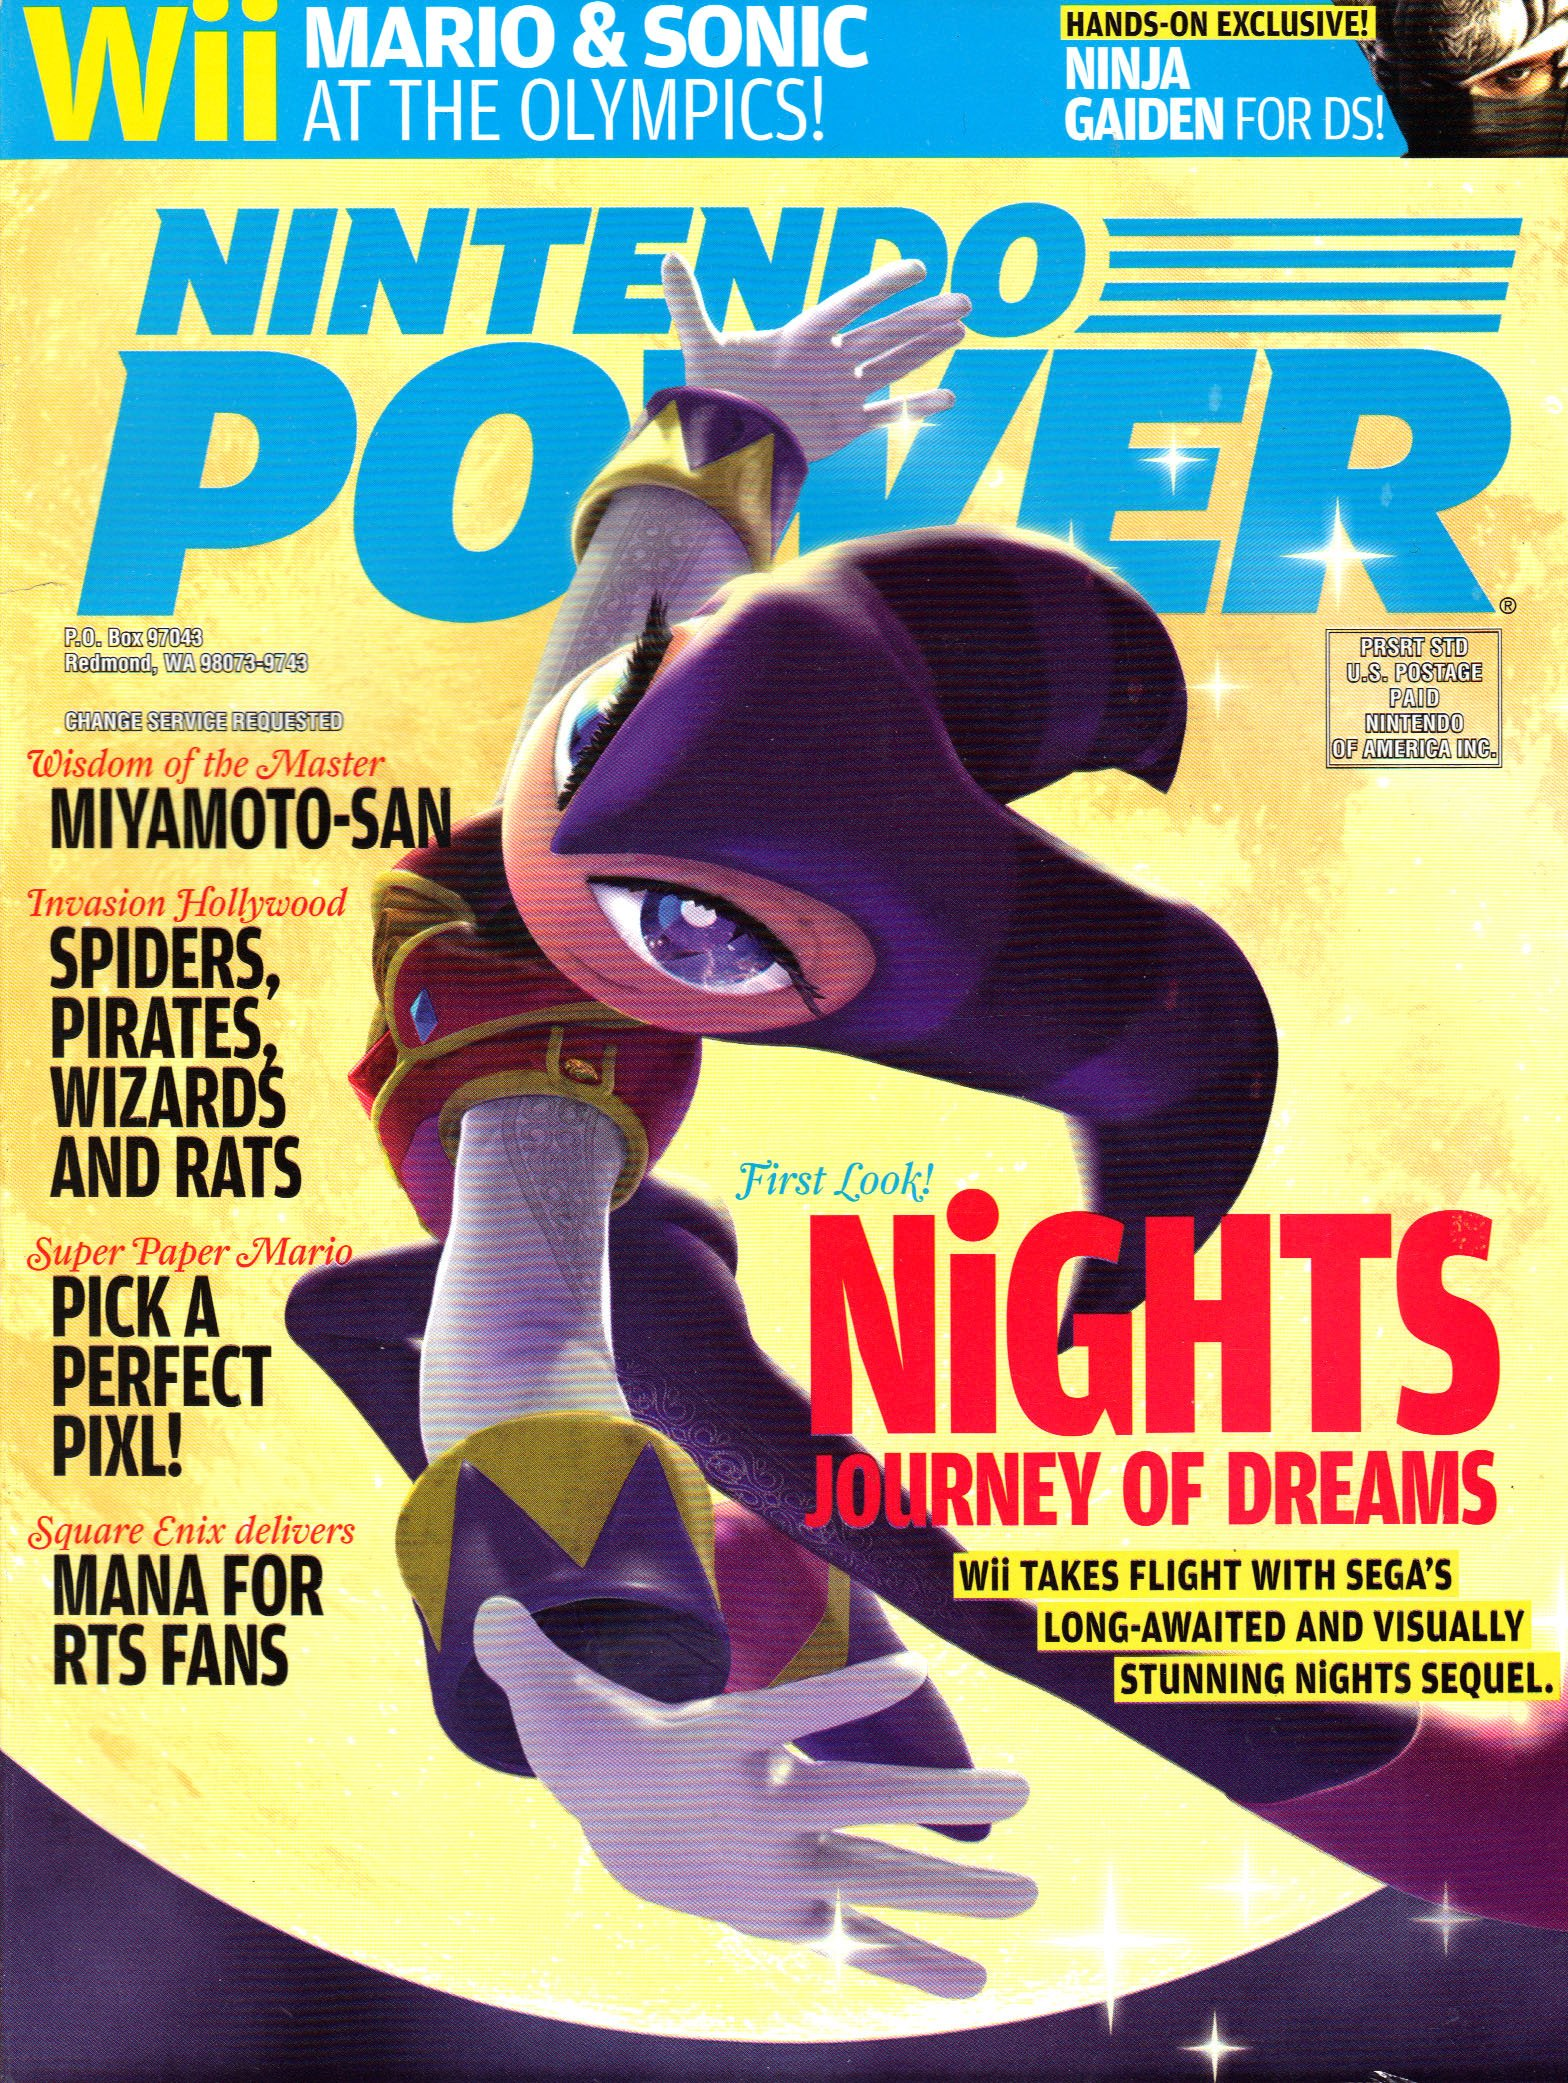 Nintendo Power Magazine June 2007 #216: various: Amazon.com ...